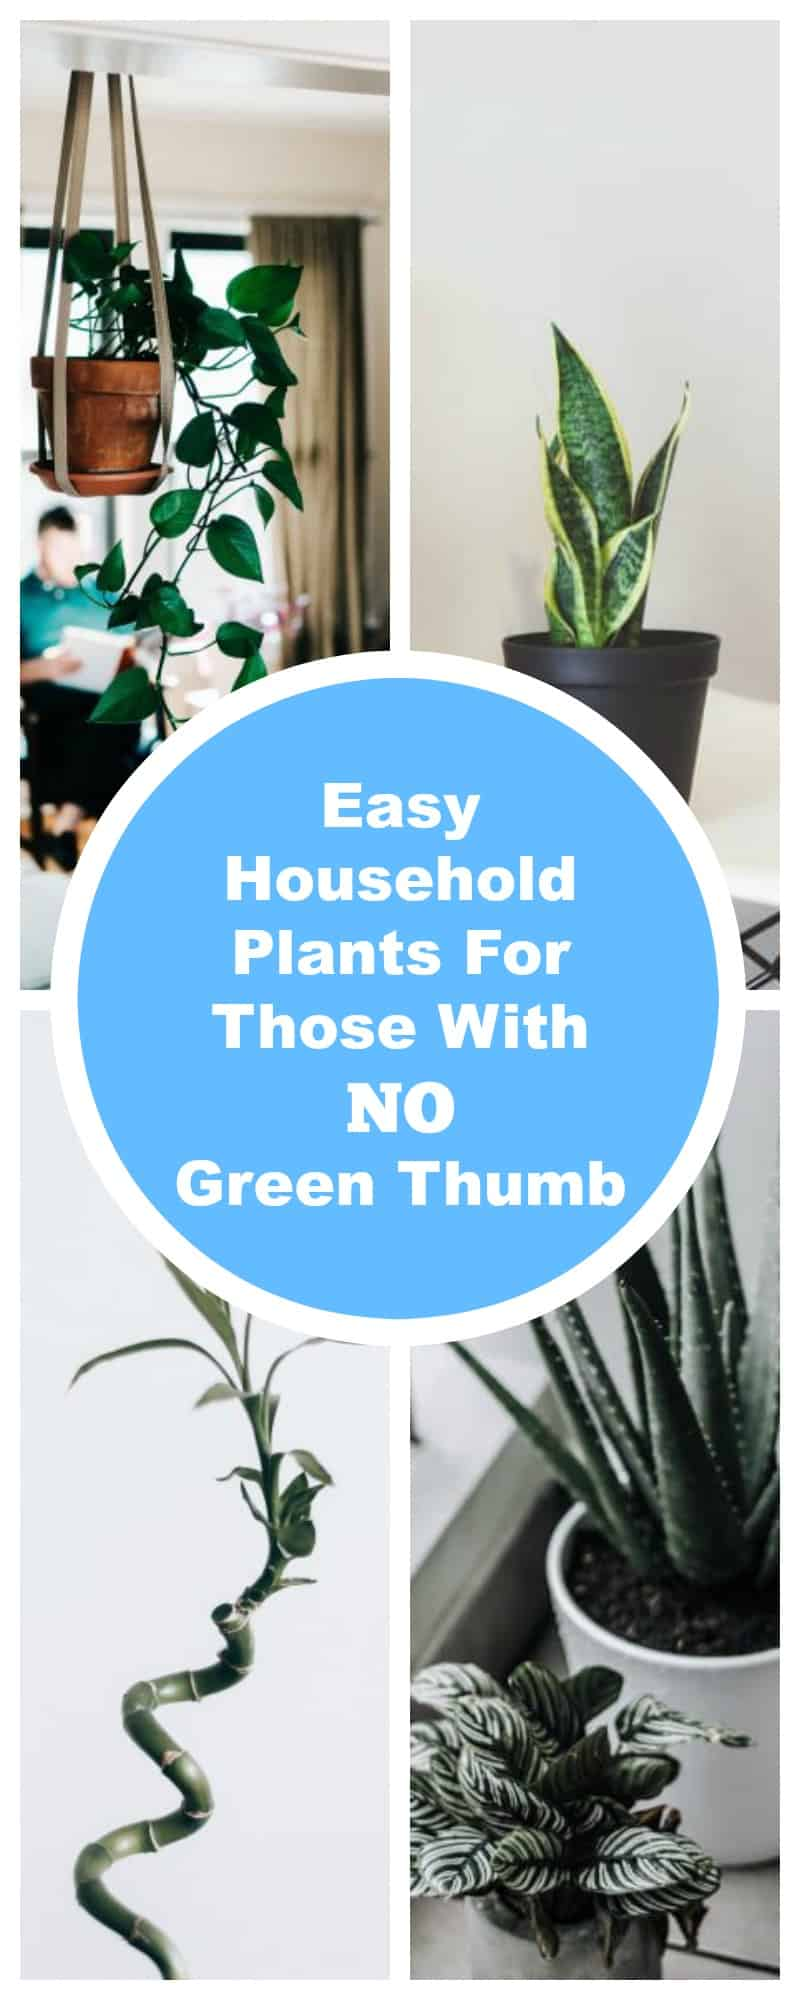 Easy Household Plants for Those With NO Green Thumb